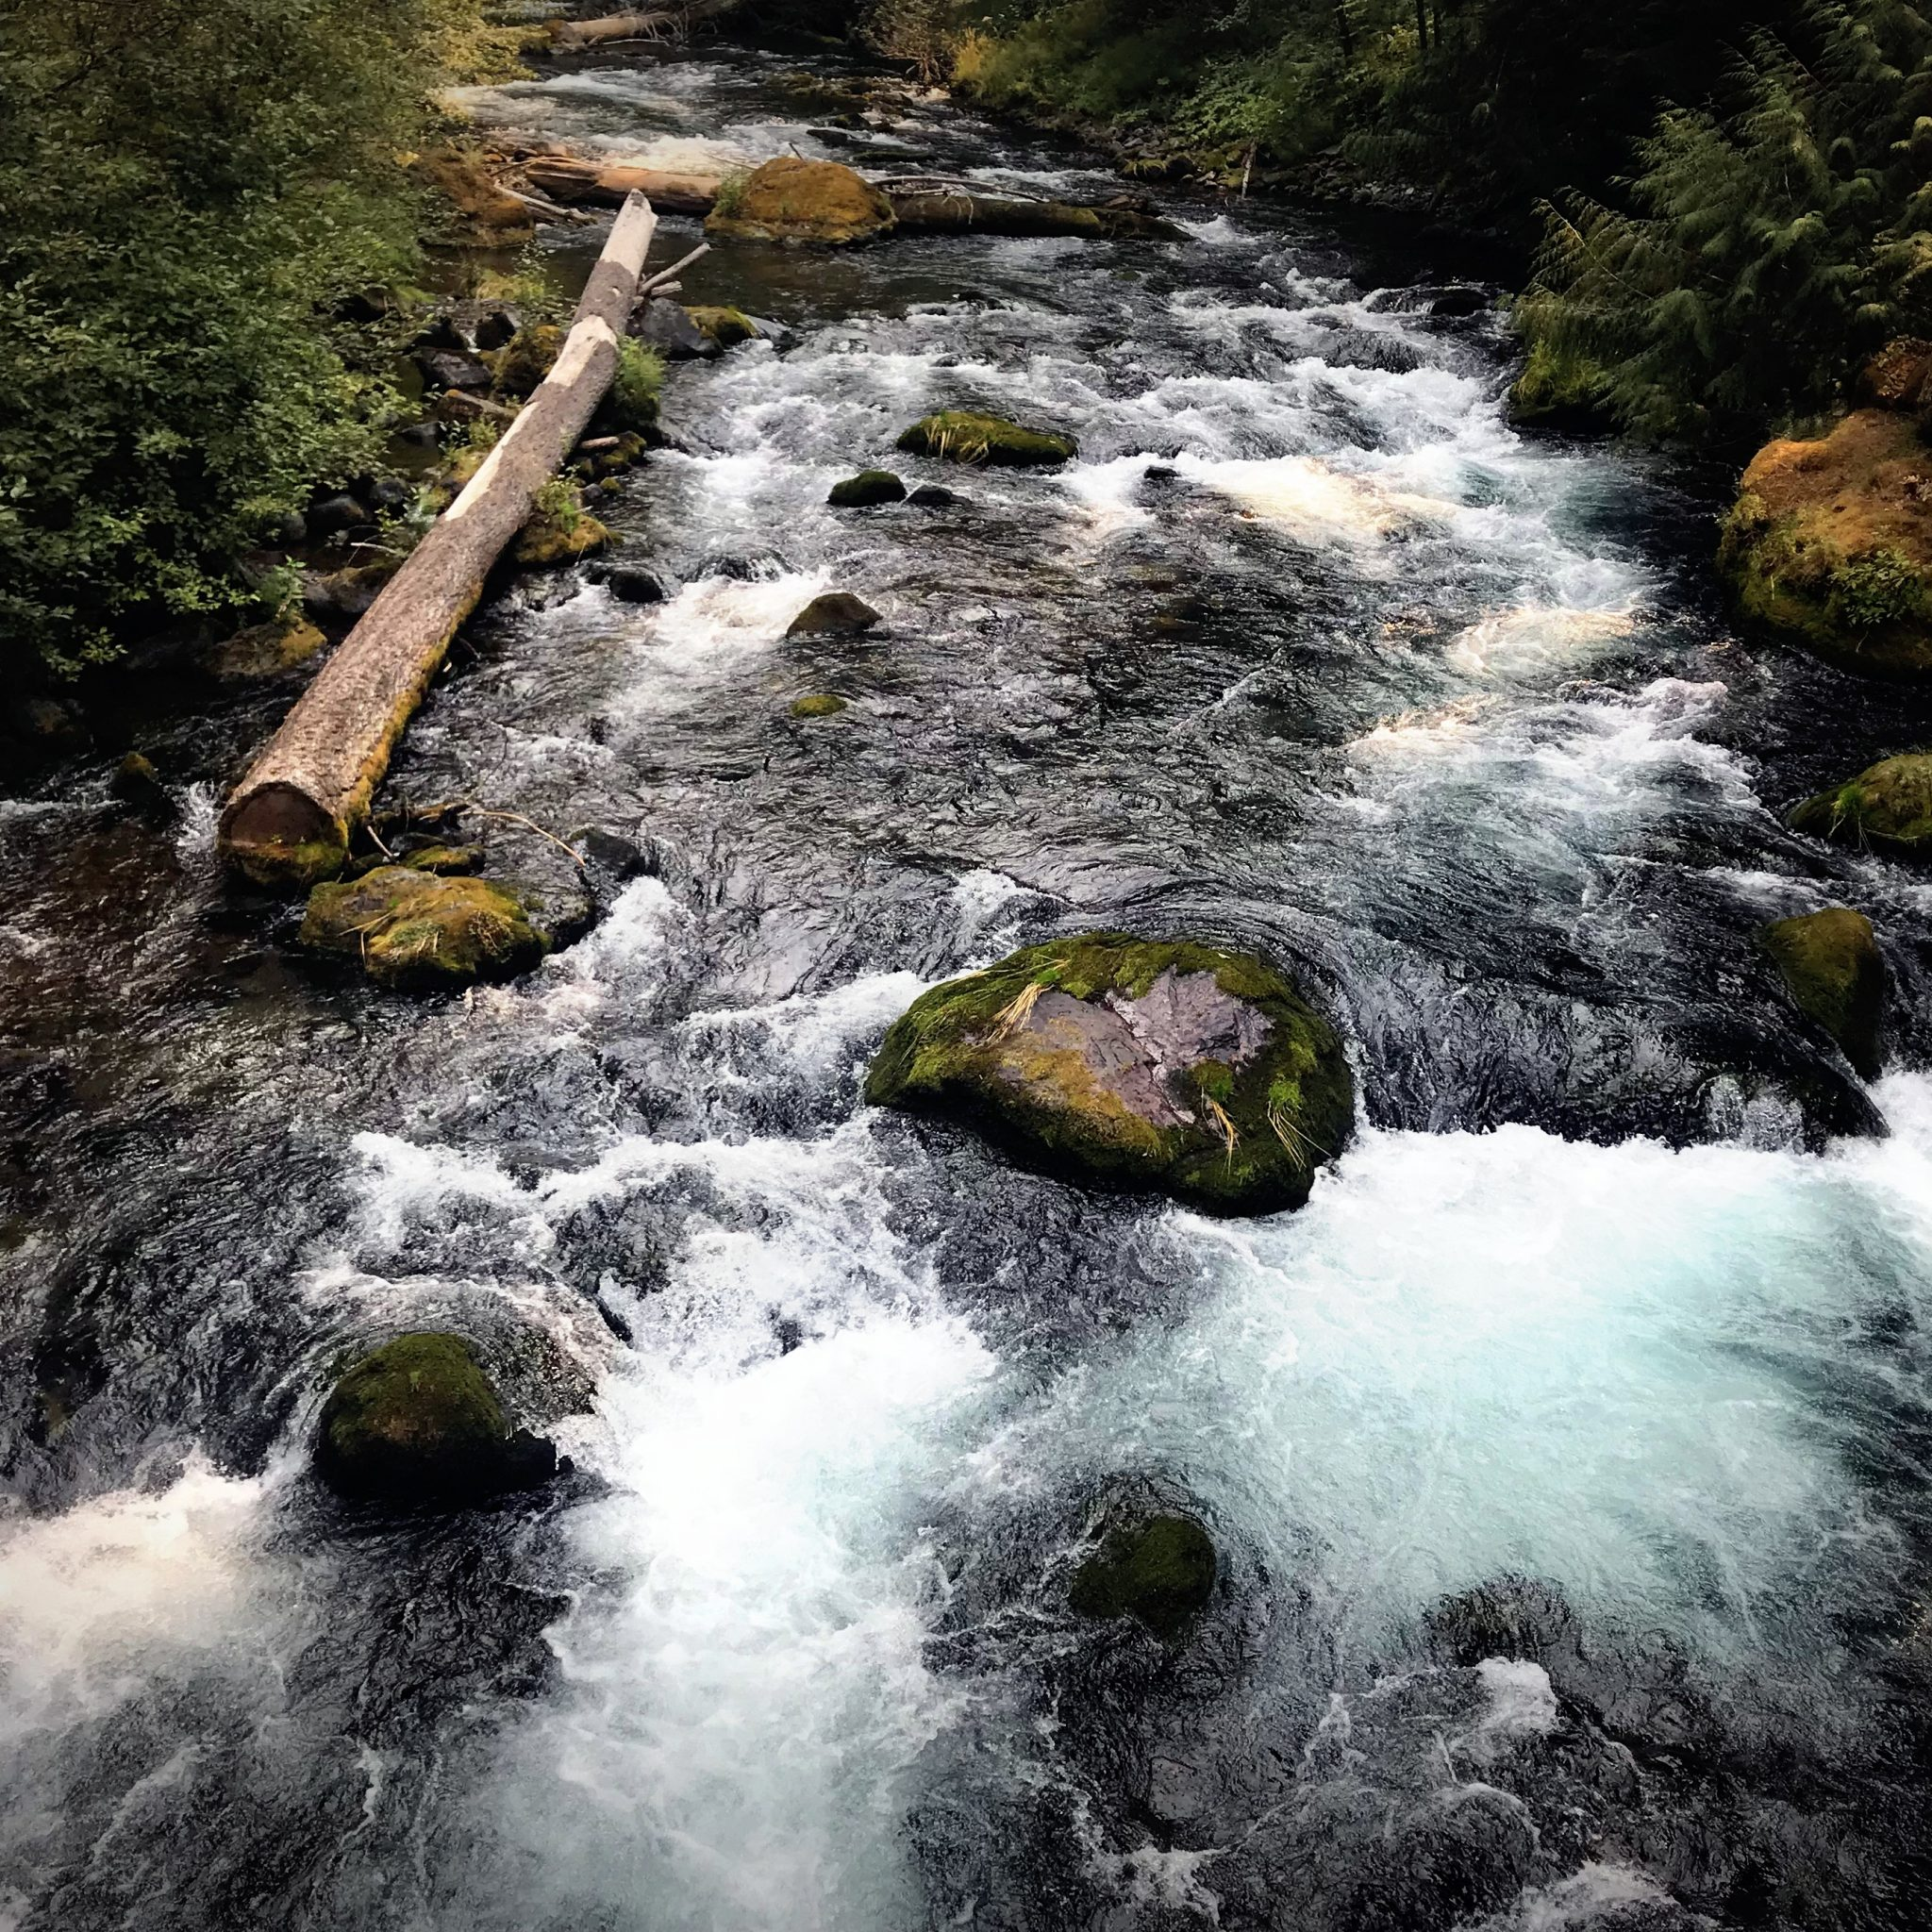 The name 'Umpqua' is believed to mean Thundering Waters.